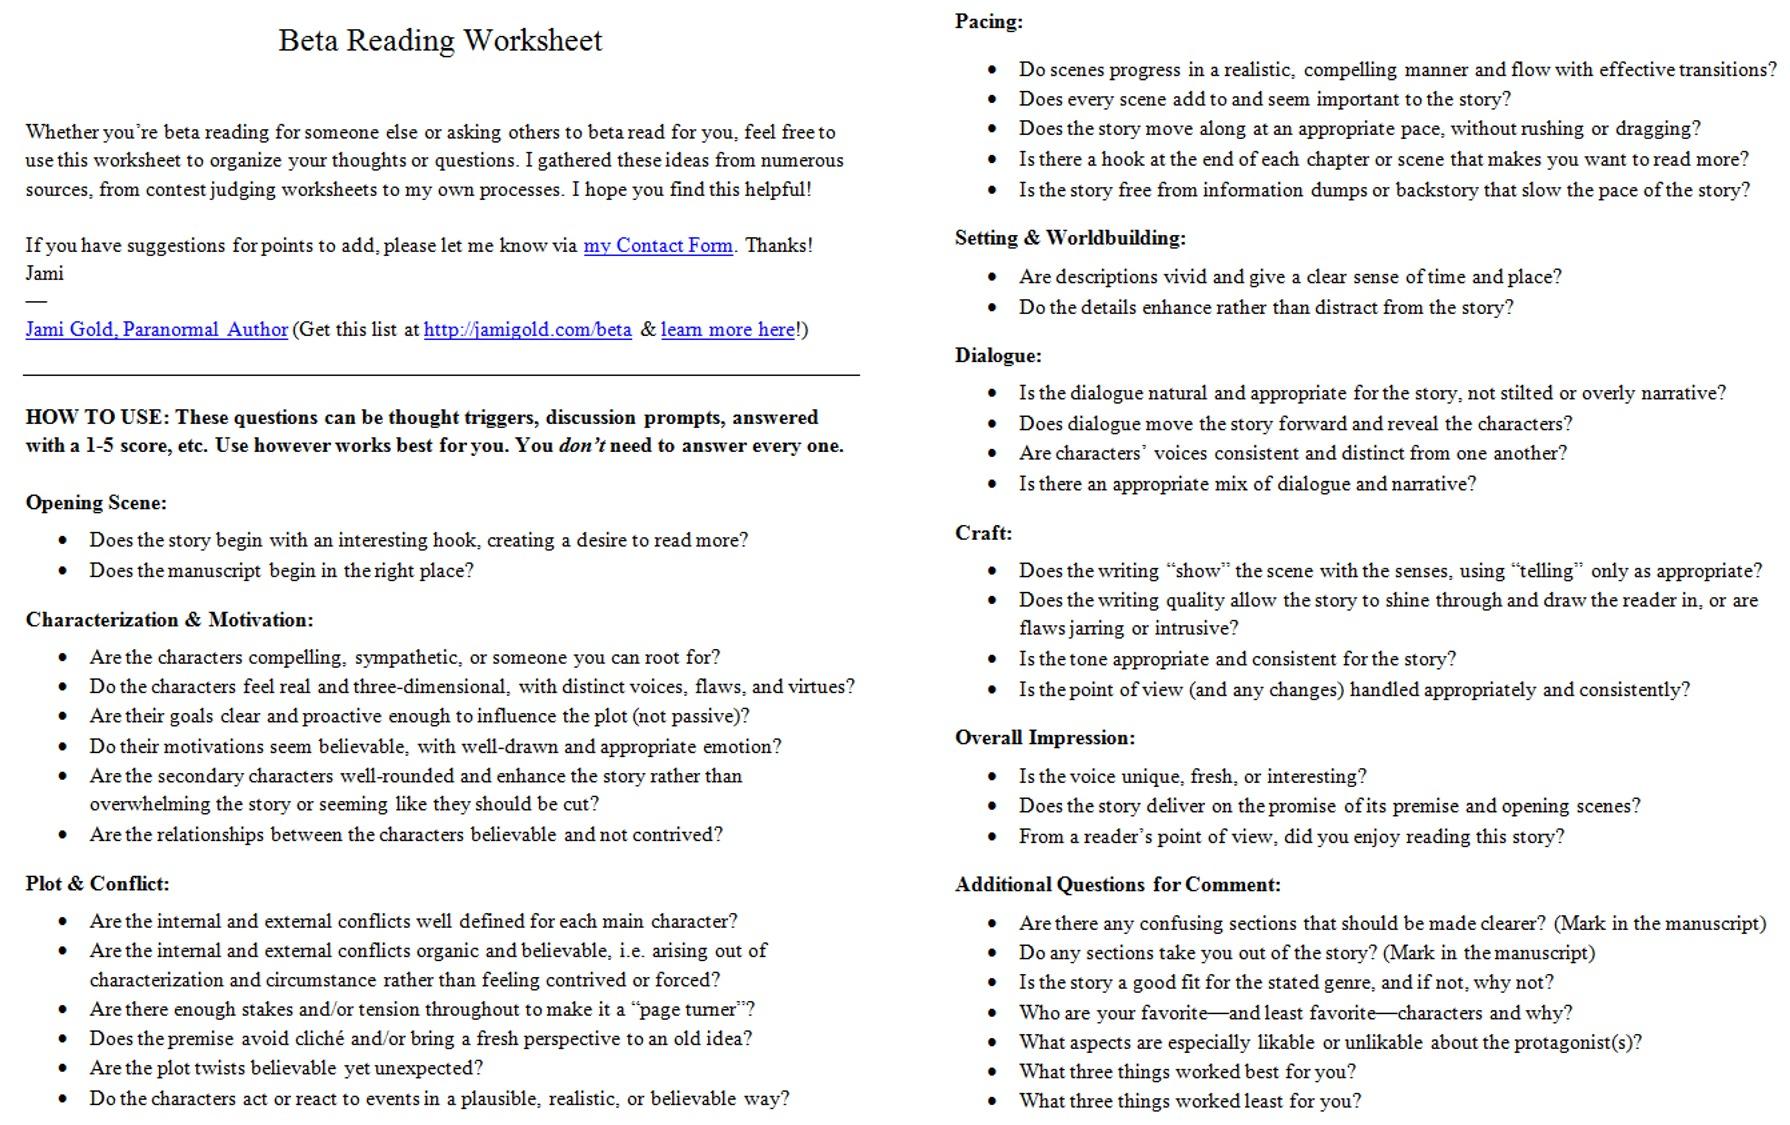 Aldiablosus  Picturesque Worksheets For Writers  Jami Gold Paranormal Author With Excellent Screen Shot Of The Twopage Beta Reading Worksheet With Charming Teaching Children To Write Their Name Worksheets Also Topic Sentence And Controlling Idea Worksheets In Addition The Congress At Work Worksheet Answers And Inuit Worksheets As Well As Maths Multiplication Worksheets For Grade  Additionally Cause And Effect Worksheets For Second Grade From Jamigoldcom With Aldiablosus  Excellent Worksheets For Writers  Jami Gold Paranormal Author With Charming Screen Shot Of The Twopage Beta Reading Worksheet And Picturesque Teaching Children To Write Their Name Worksheets Also Topic Sentence And Controlling Idea Worksheets In Addition The Congress At Work Worksheet Answers From Jamigoldcom